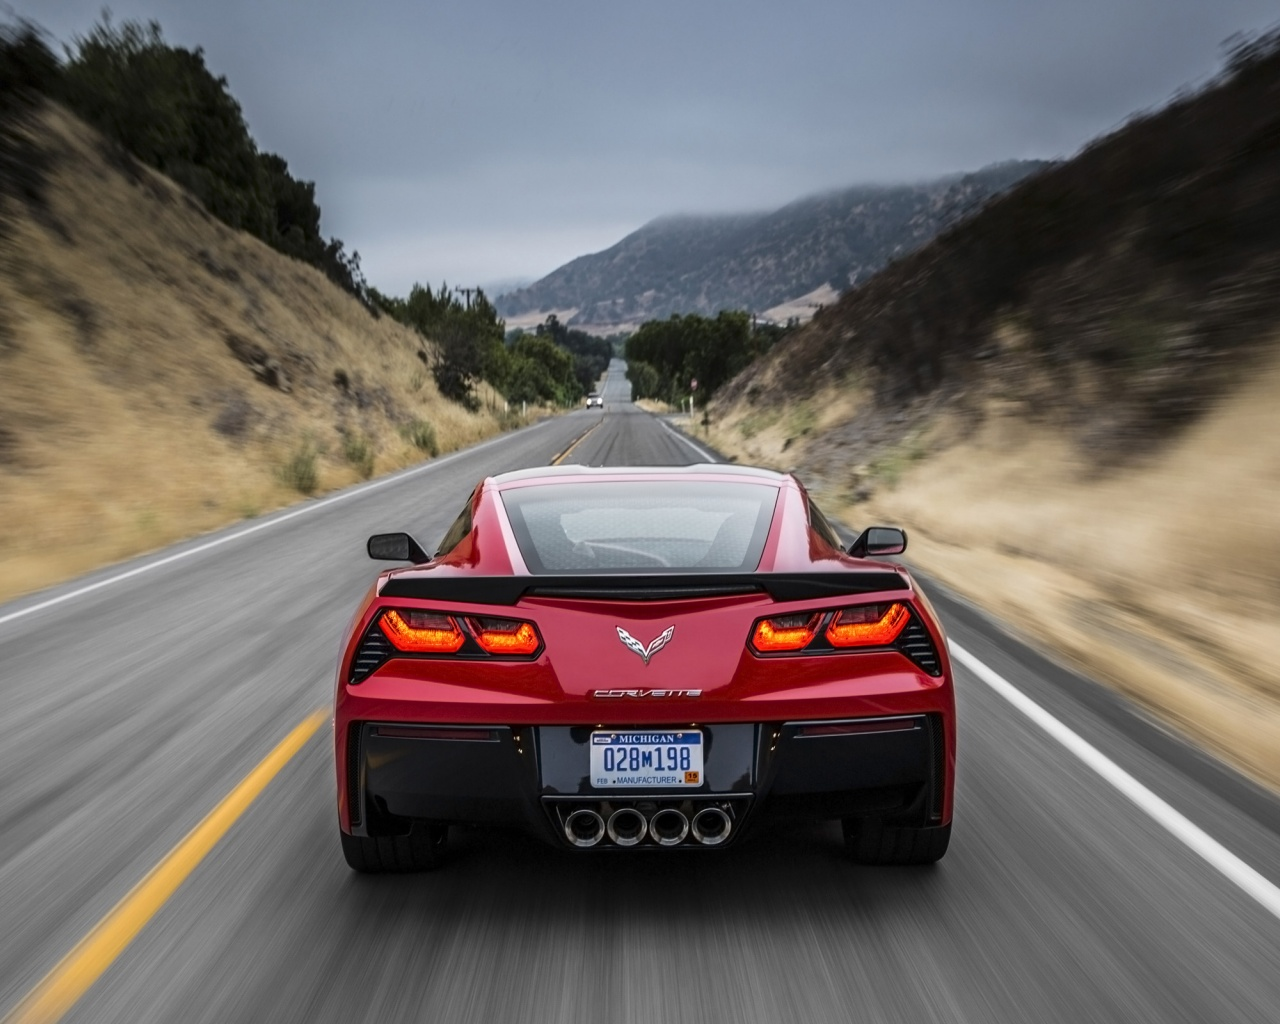 1280x1024 2014 Red Chevrolet Corvette Stingray Red Motion Desktop Pc